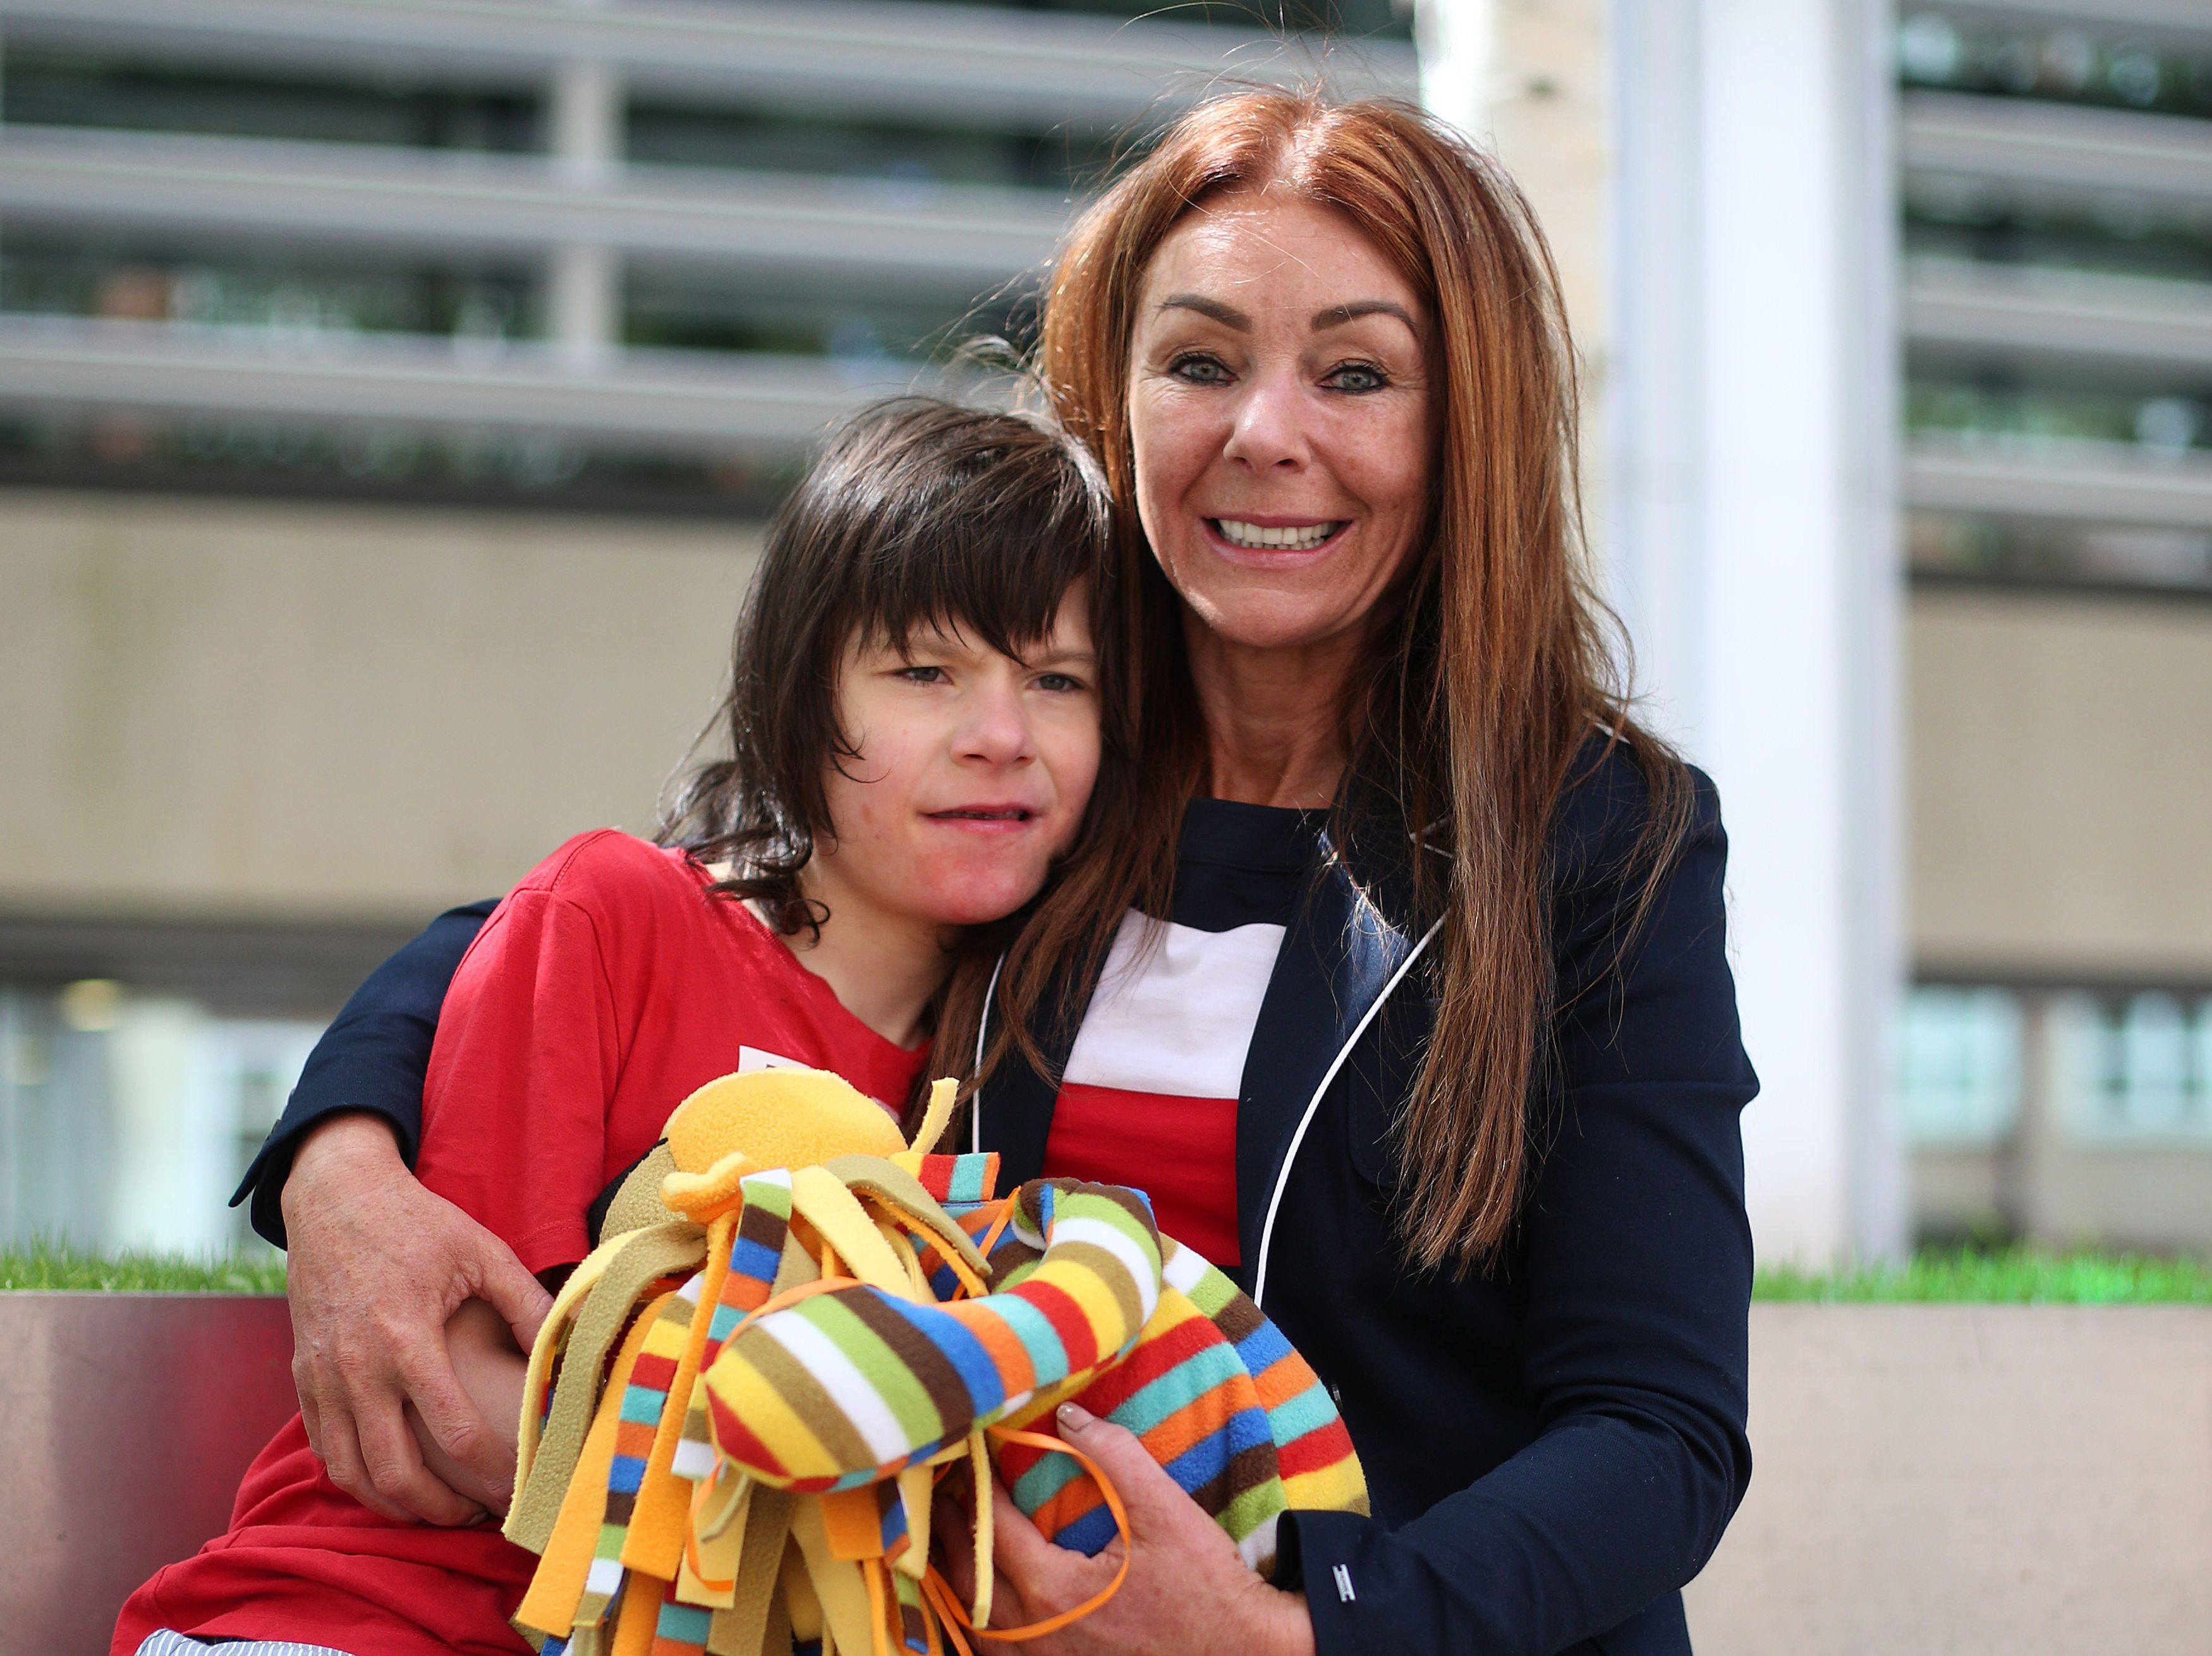 Charlotte Caldwell and her son Billy outside the Home Office in London ahead of a meeting with ministers...